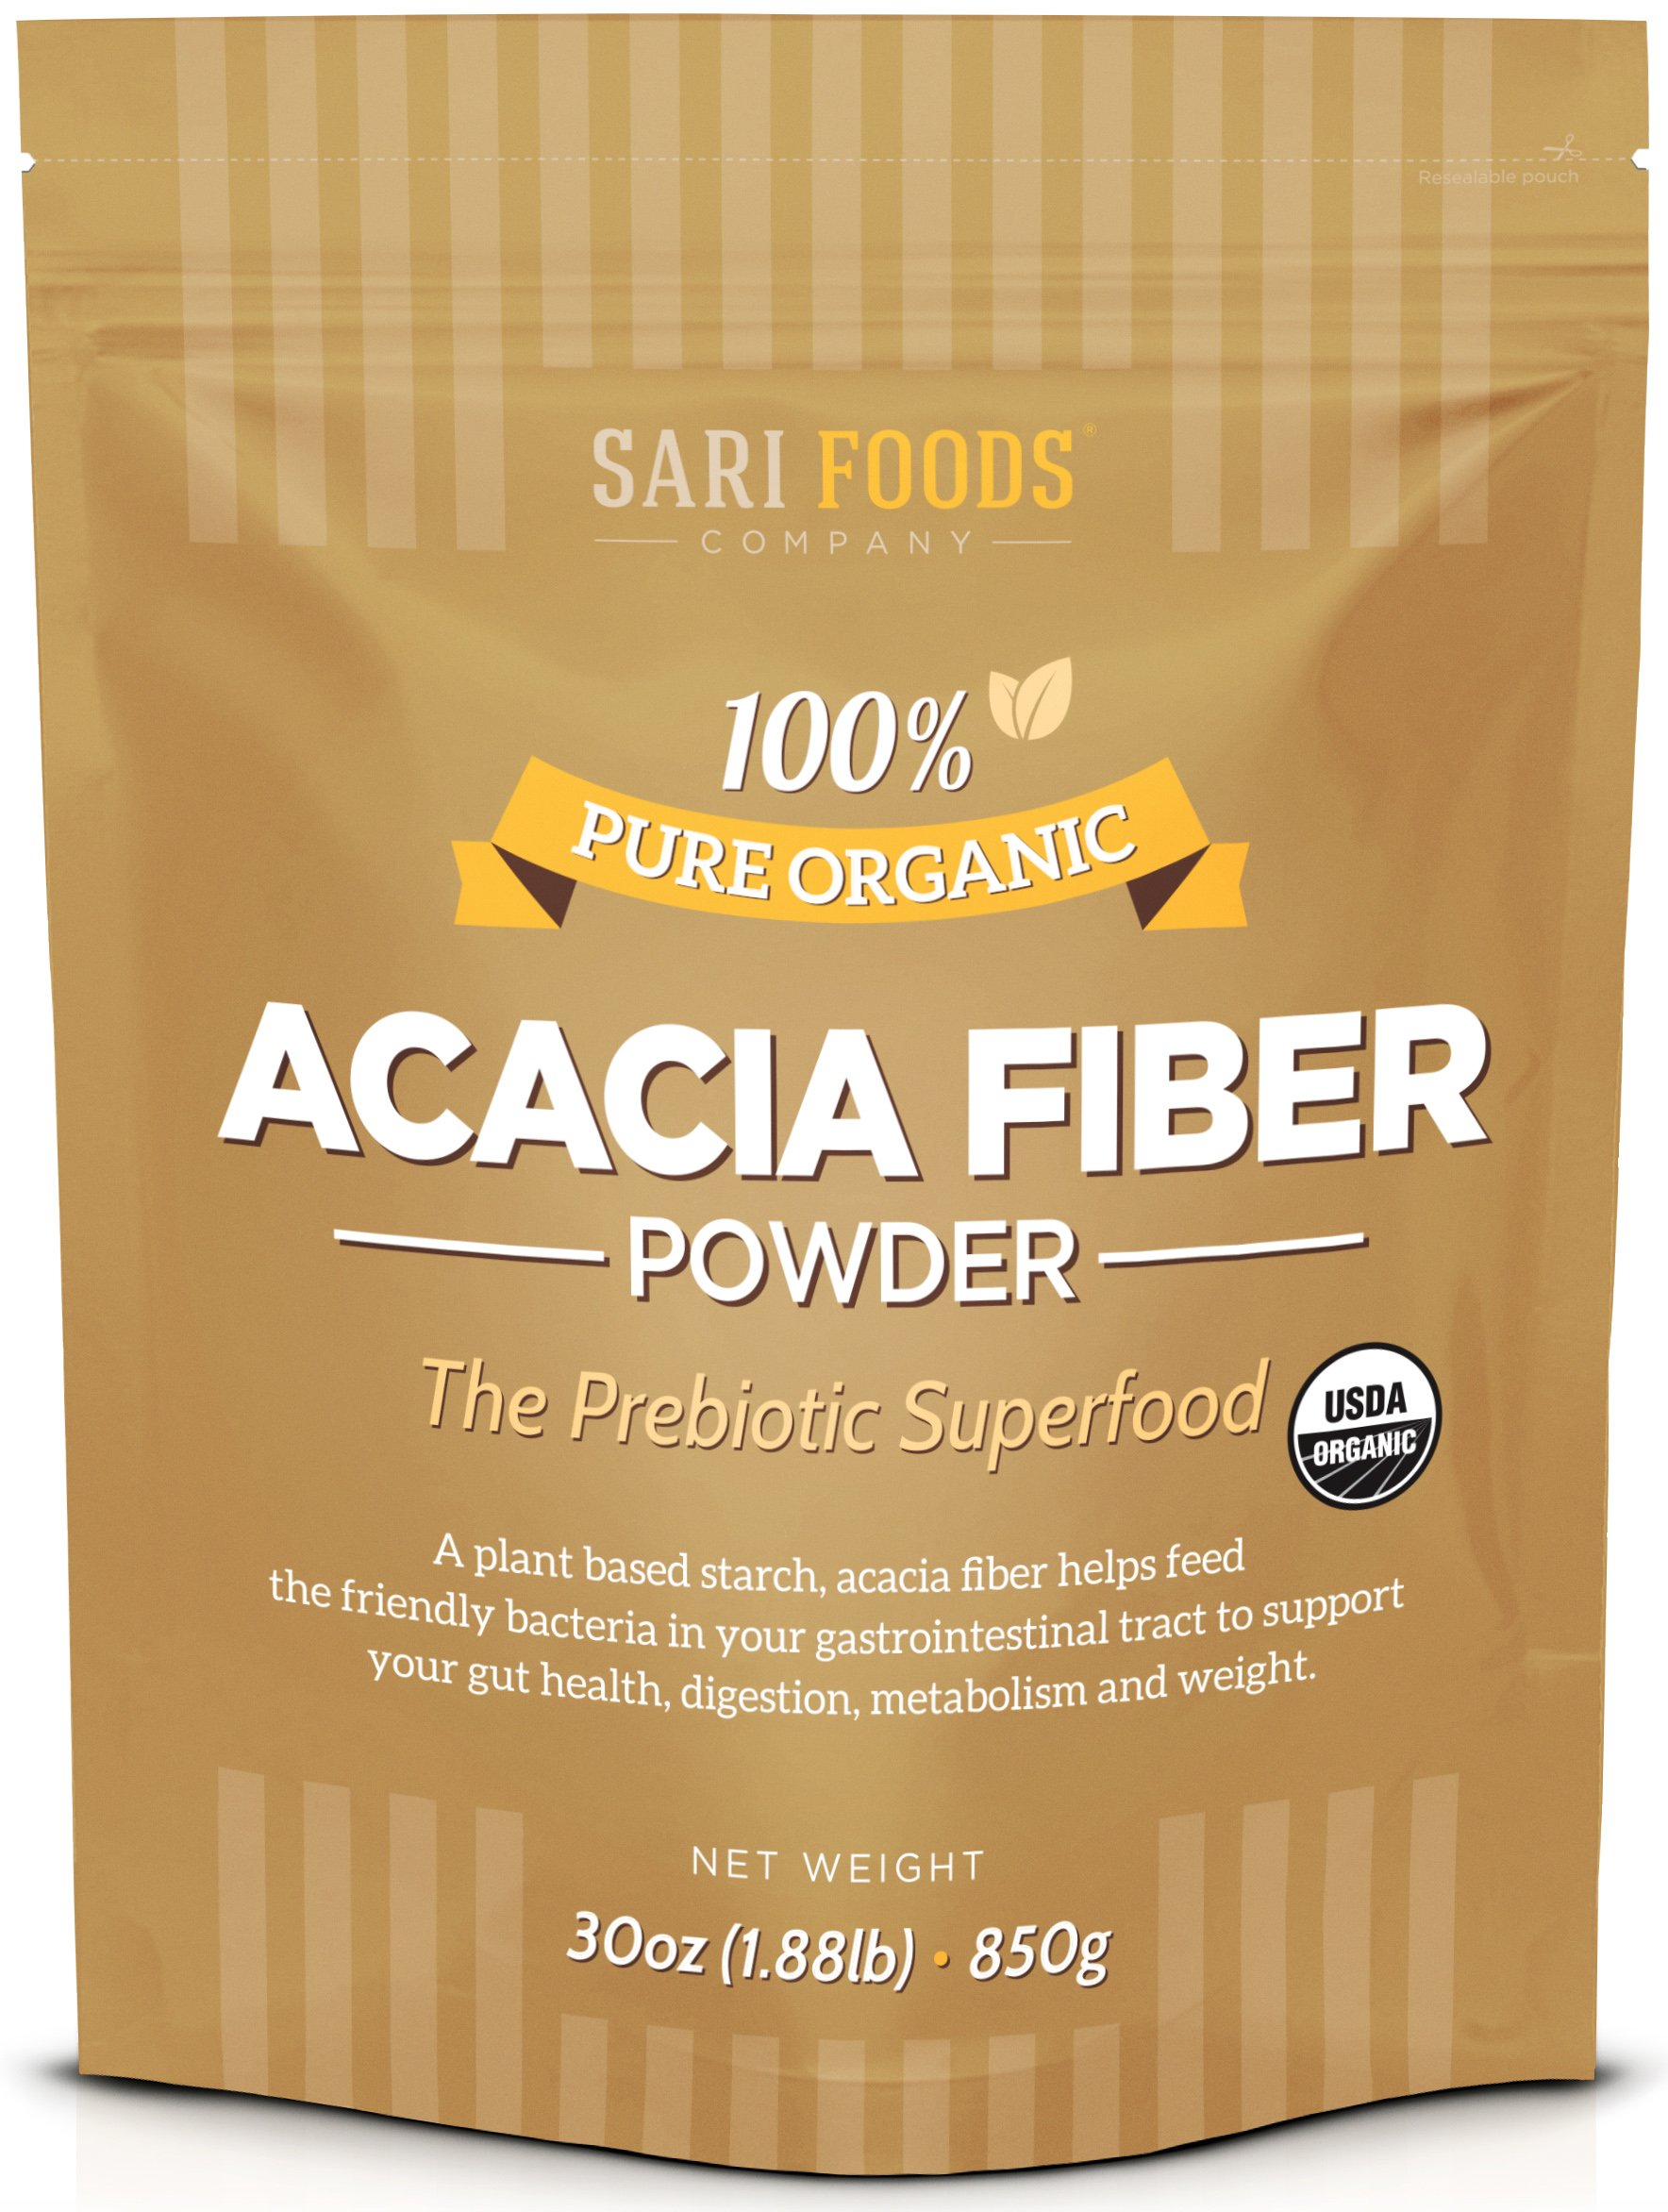 Organic Acacia Fiber Powder (30 Ounce): Natural, Whole Food, Plant Based Prebiotic Superfood for Gut Health